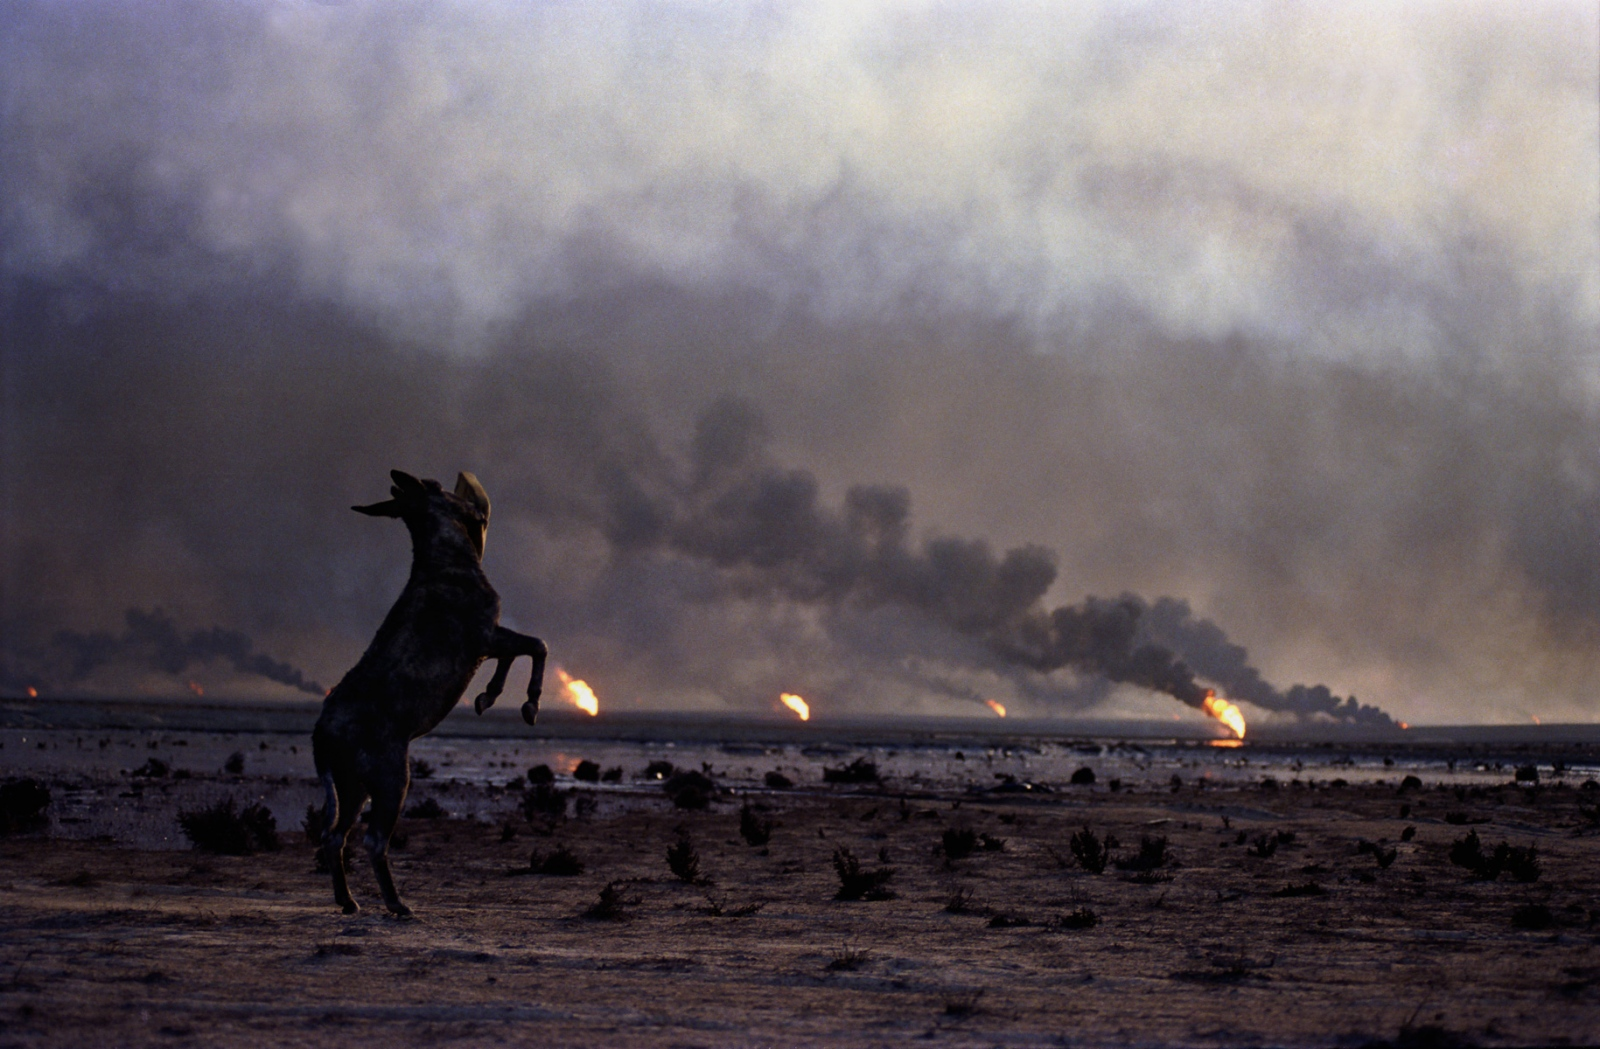 Oil fires set by retreating Iraqi troops raged throughout Kuwait at the end of the Gulf War in 1991.